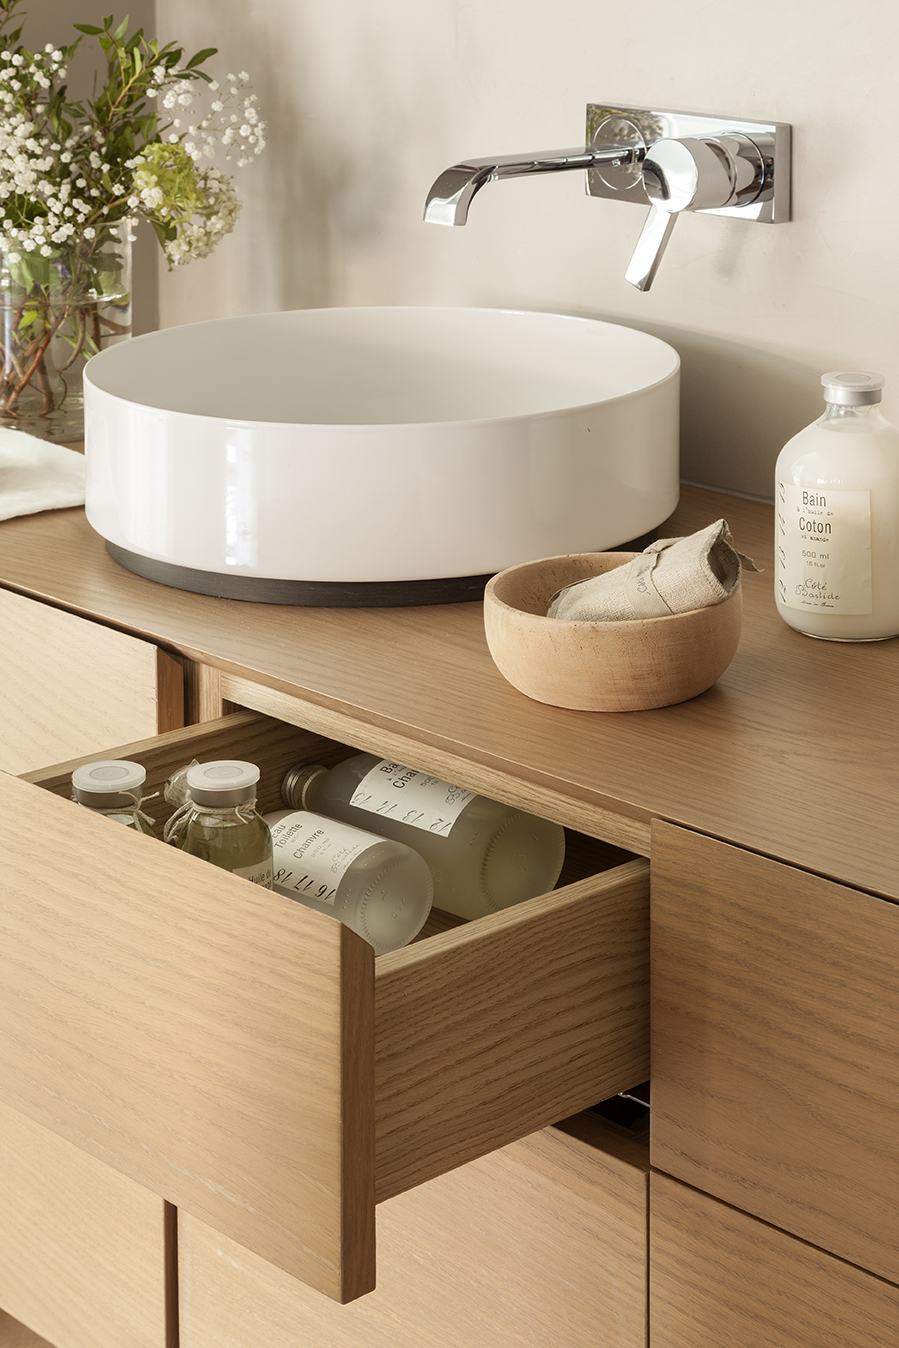 Ideas para que tu ba o sea m s confortable y acogedor - Mueble lavabo blanco ...